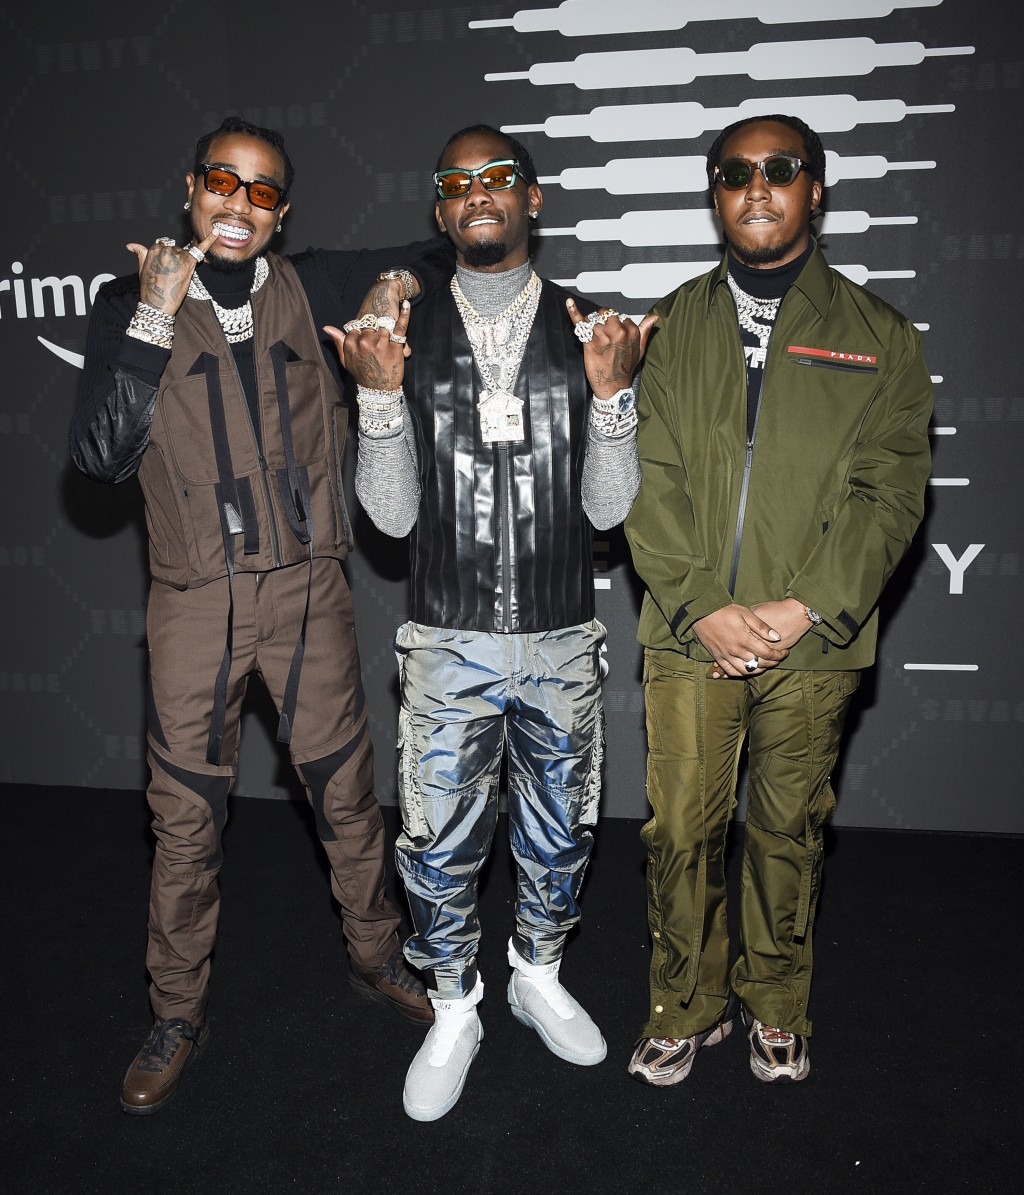 Quavo, Offset, and Takeoff of Migos attend the Spring/Summer 2020 Savage X Fenty show, presented by Amazon Prime, at the Barclays Center on Tuesday, S